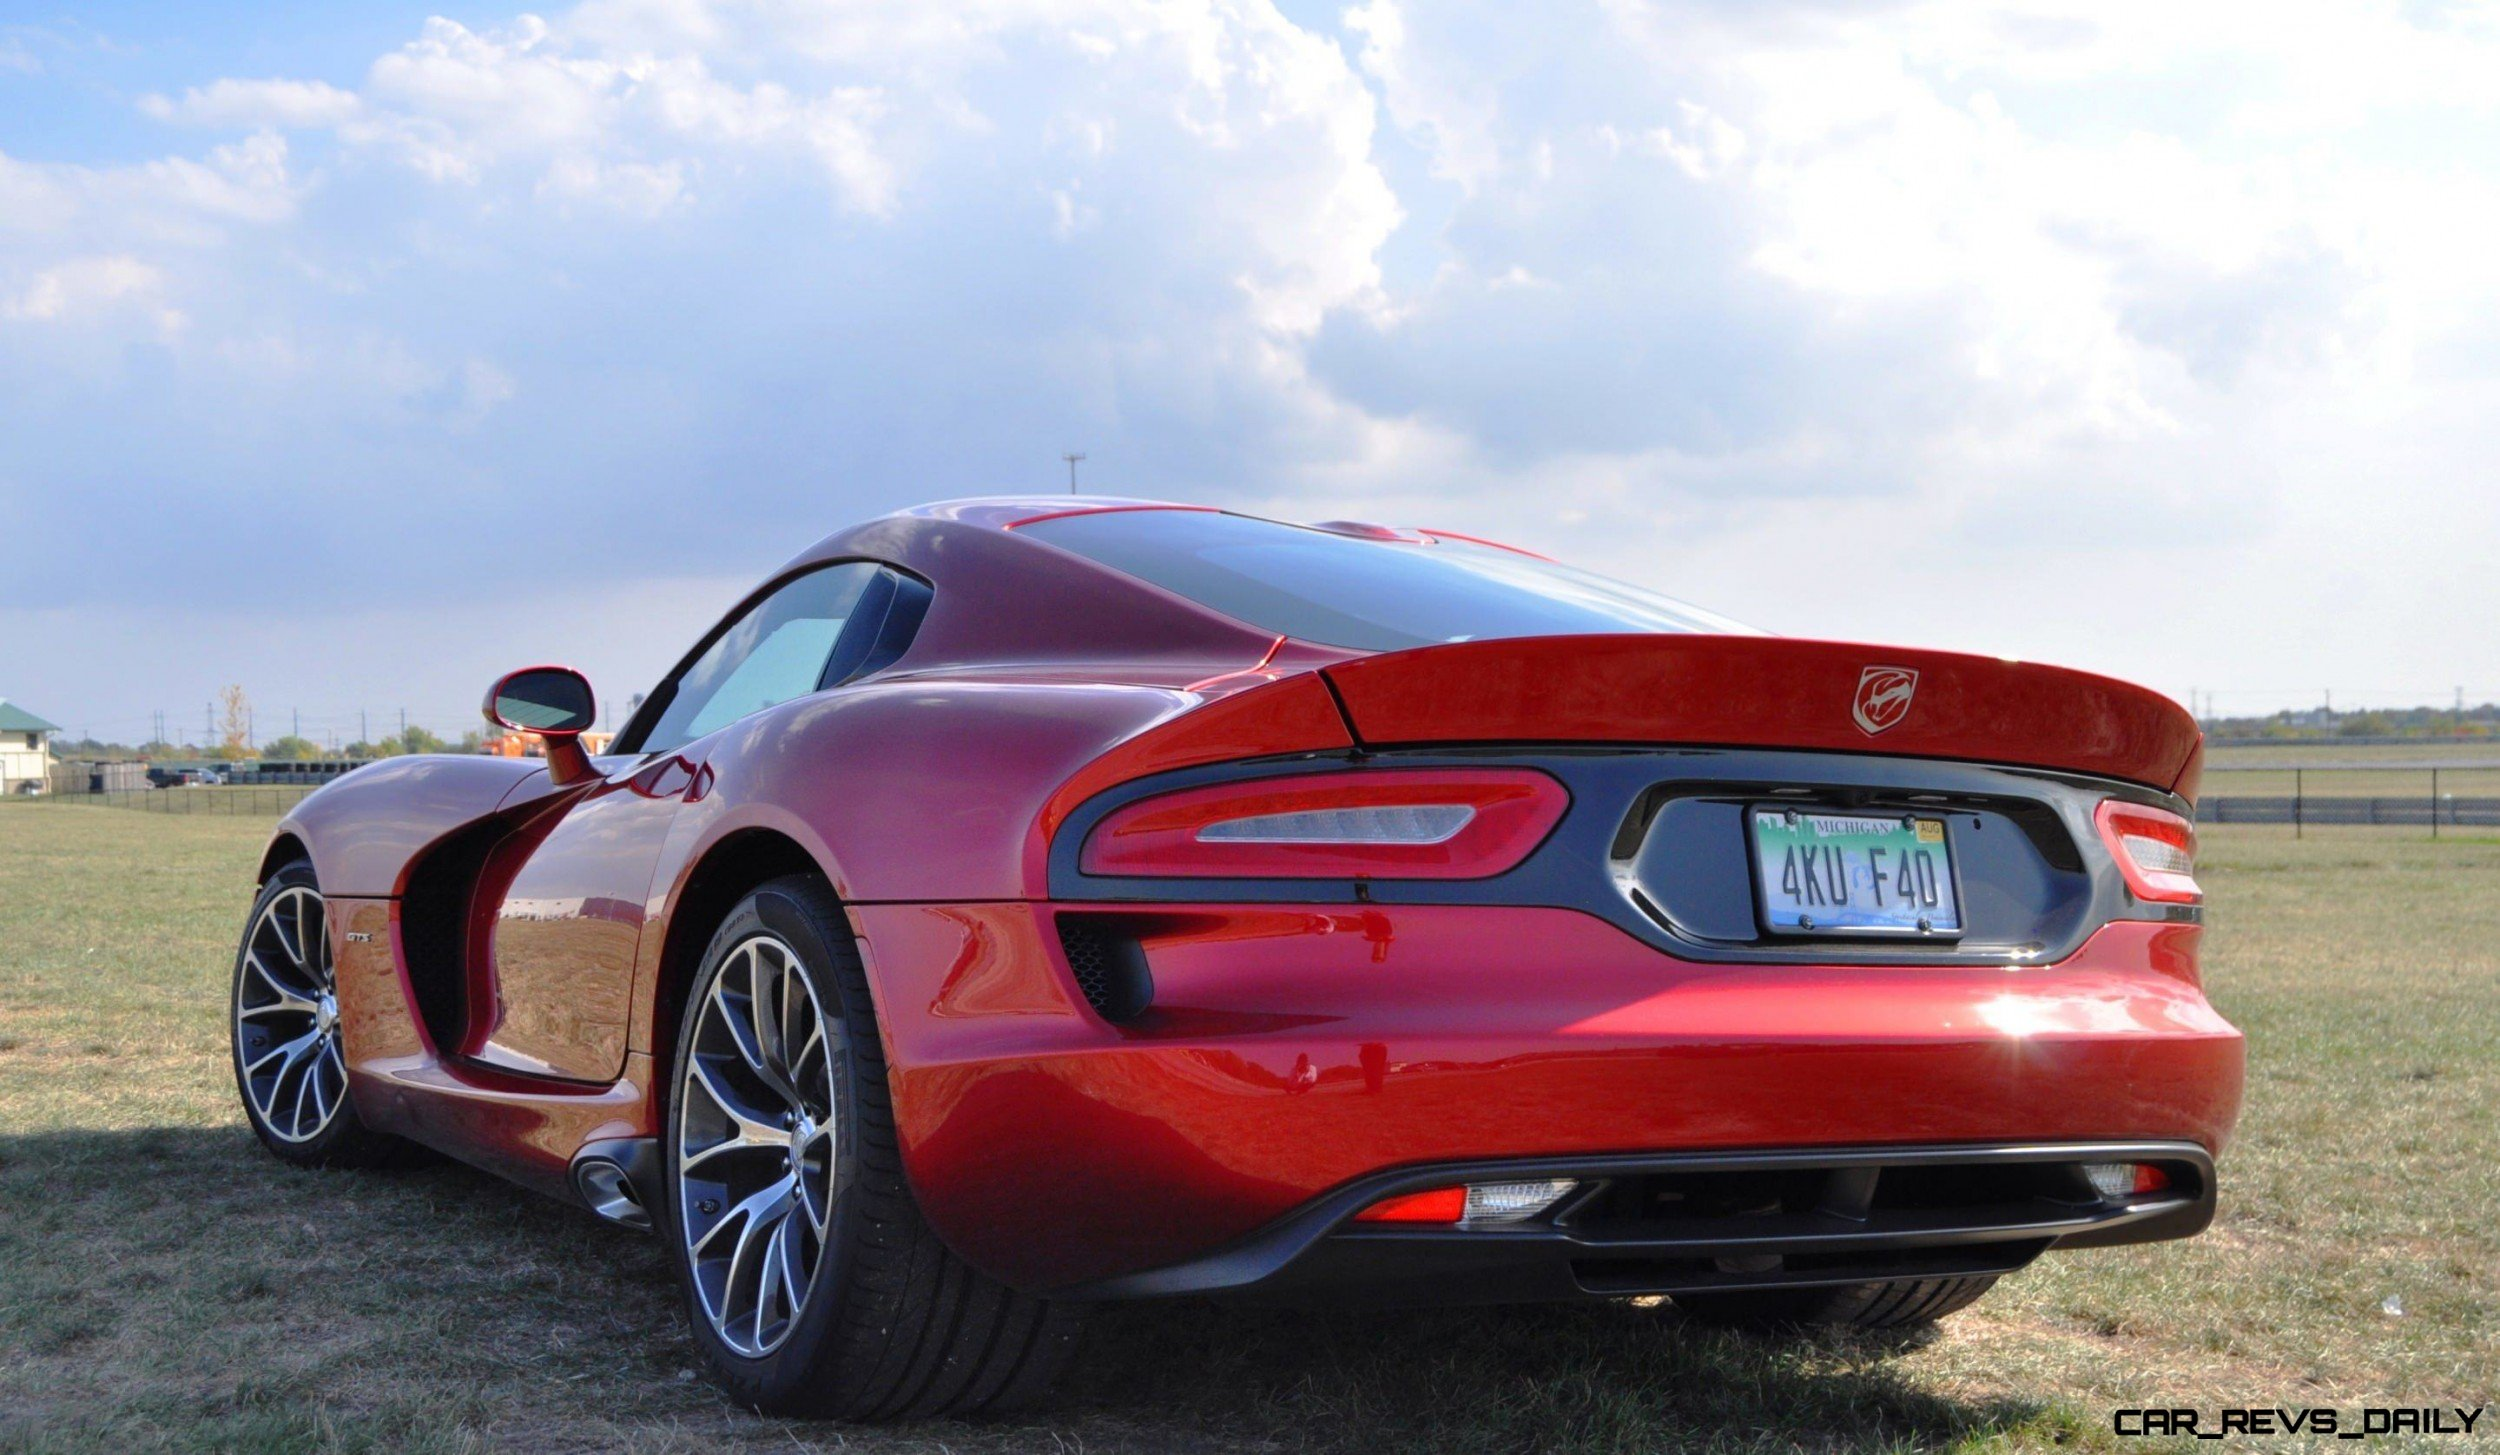 CarRevsDaily.com - 2014 SRT Viper GTS - Huge Wallpapers18